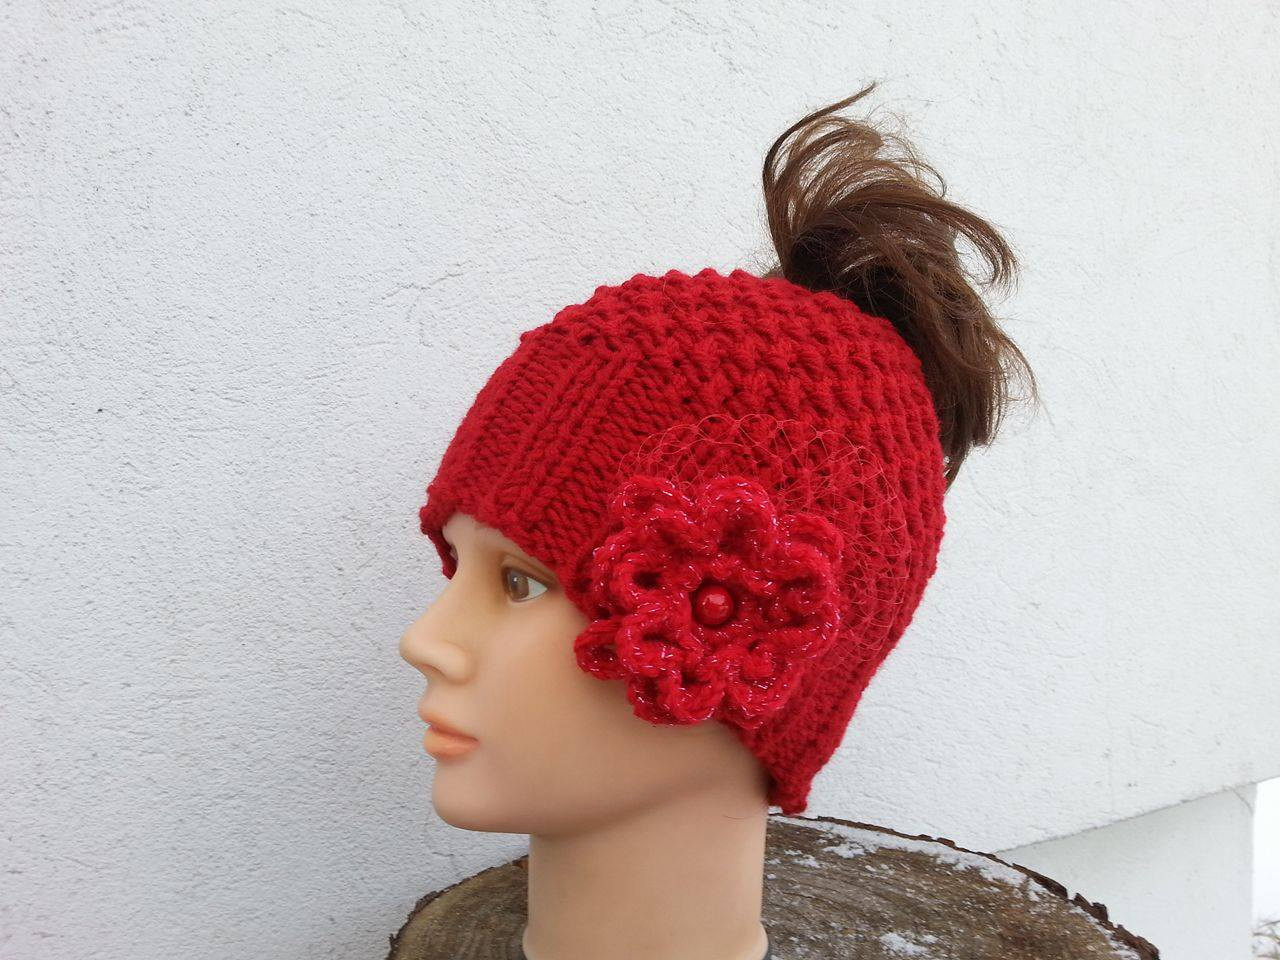 Crochet Messy Bun Beanie Lovely Messy Bun Beanie Rose Freeform Crochet Women Hat Winter Messy Of New 43 Photos Crochet Messy Bun Beanie